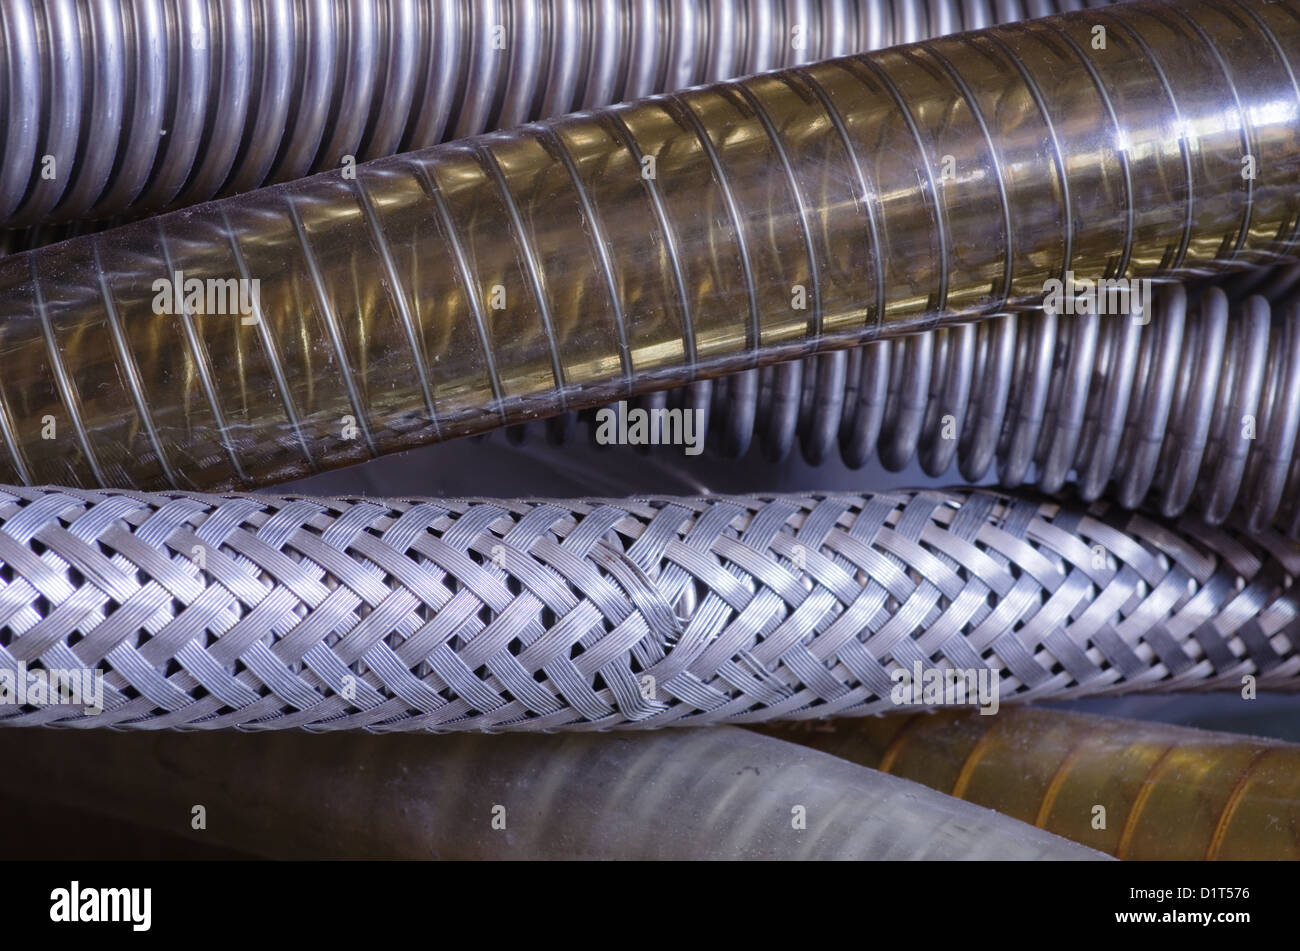 close up image of a number of reinforced vacuum hoses - Stock Image